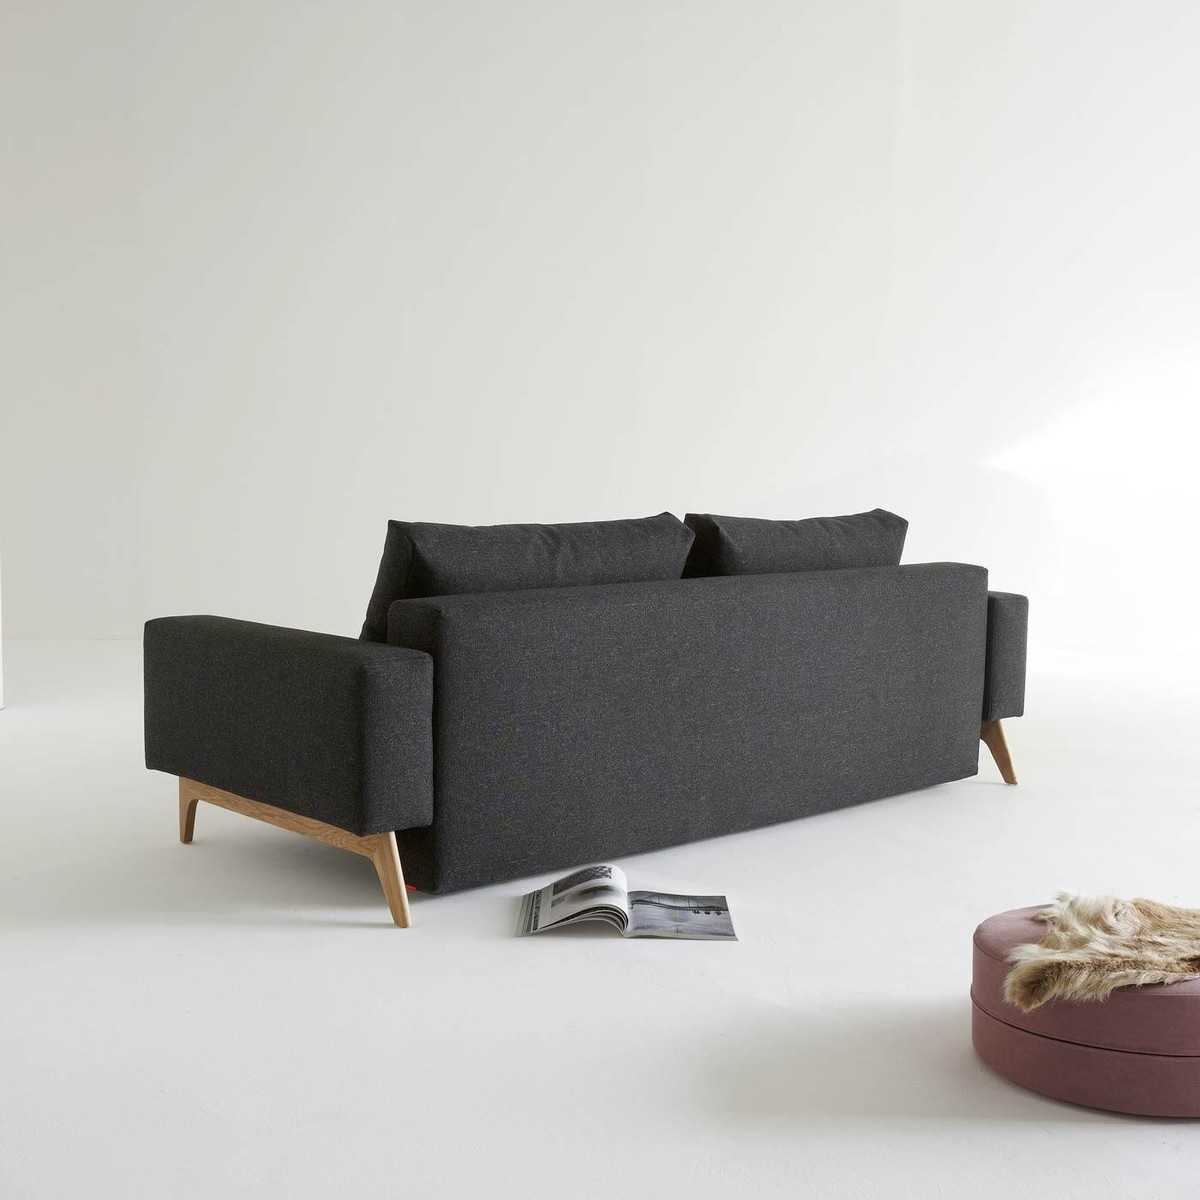 Idun canap lit innovation canap s lits mobilier for Mobilier canape